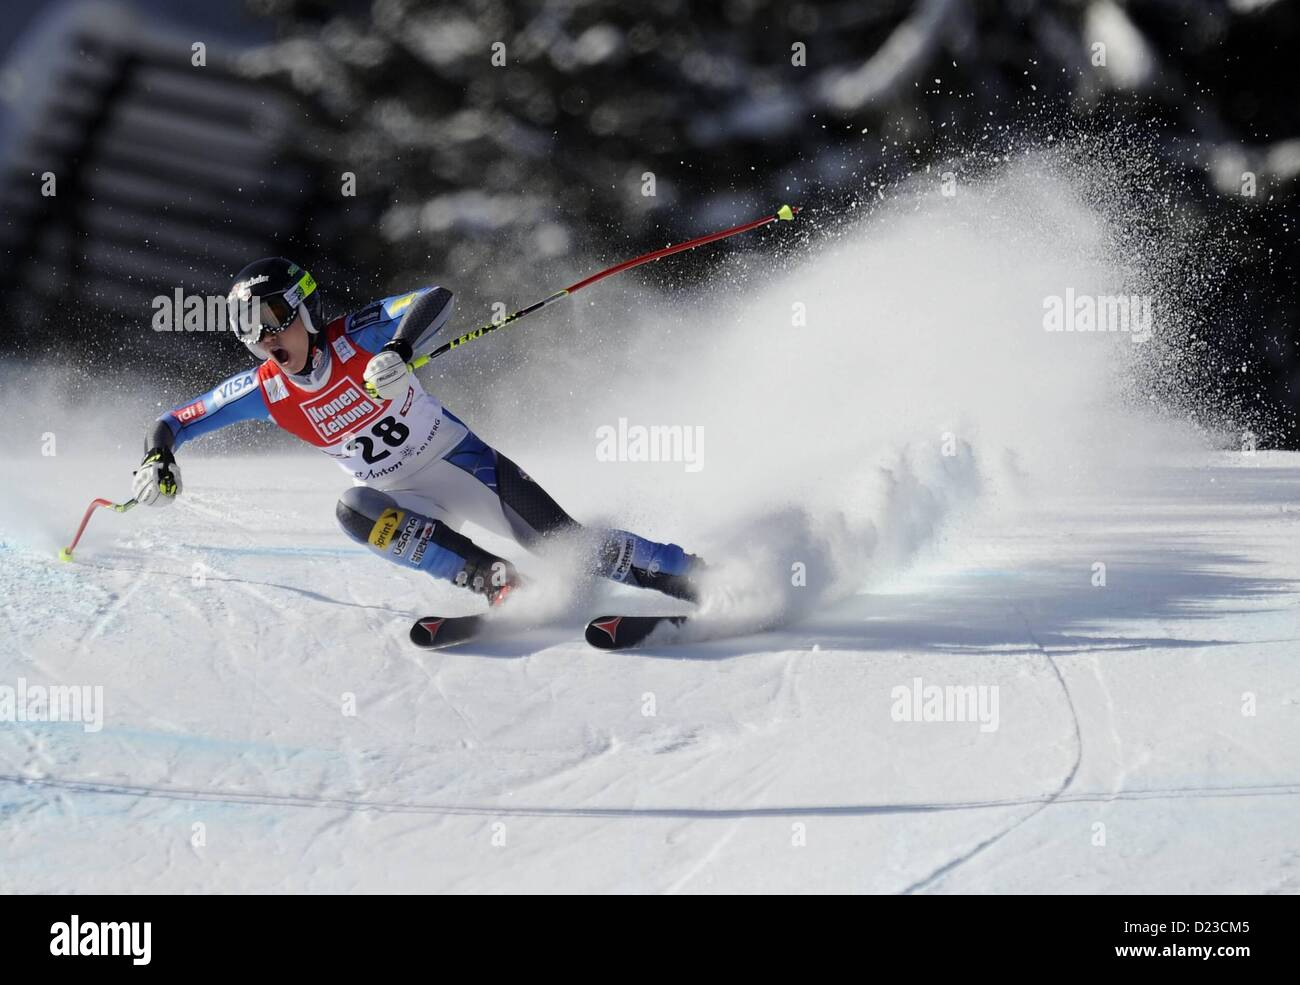 St Anton, Austria. 13th Jan, 2013.   Ski Alpine FIS World Cup Super G for women Laurenne Ross USA - Stock Image